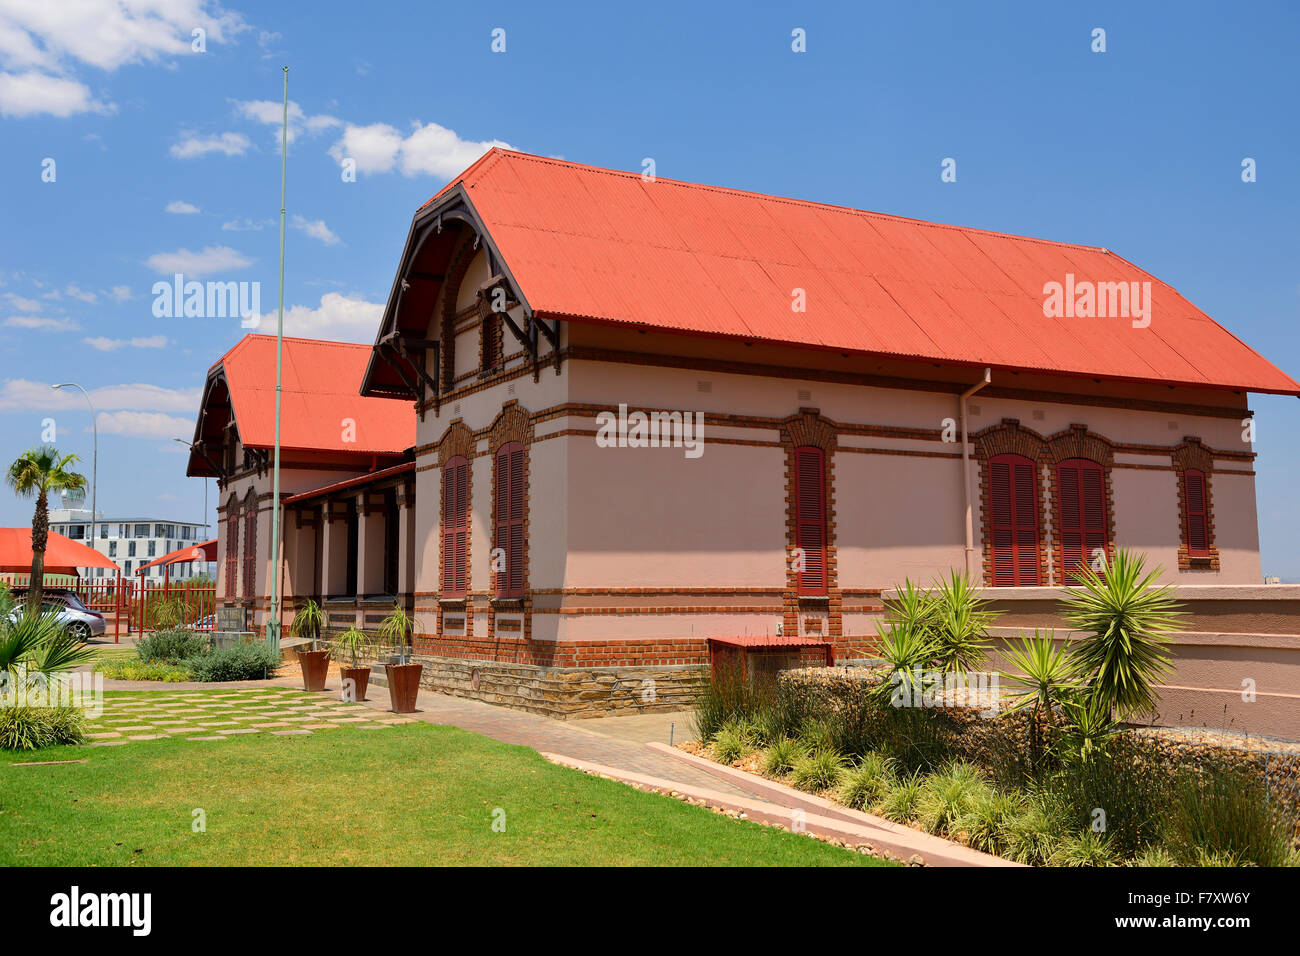 Historical building in downtown Windhoek, Namibia - Stock Image